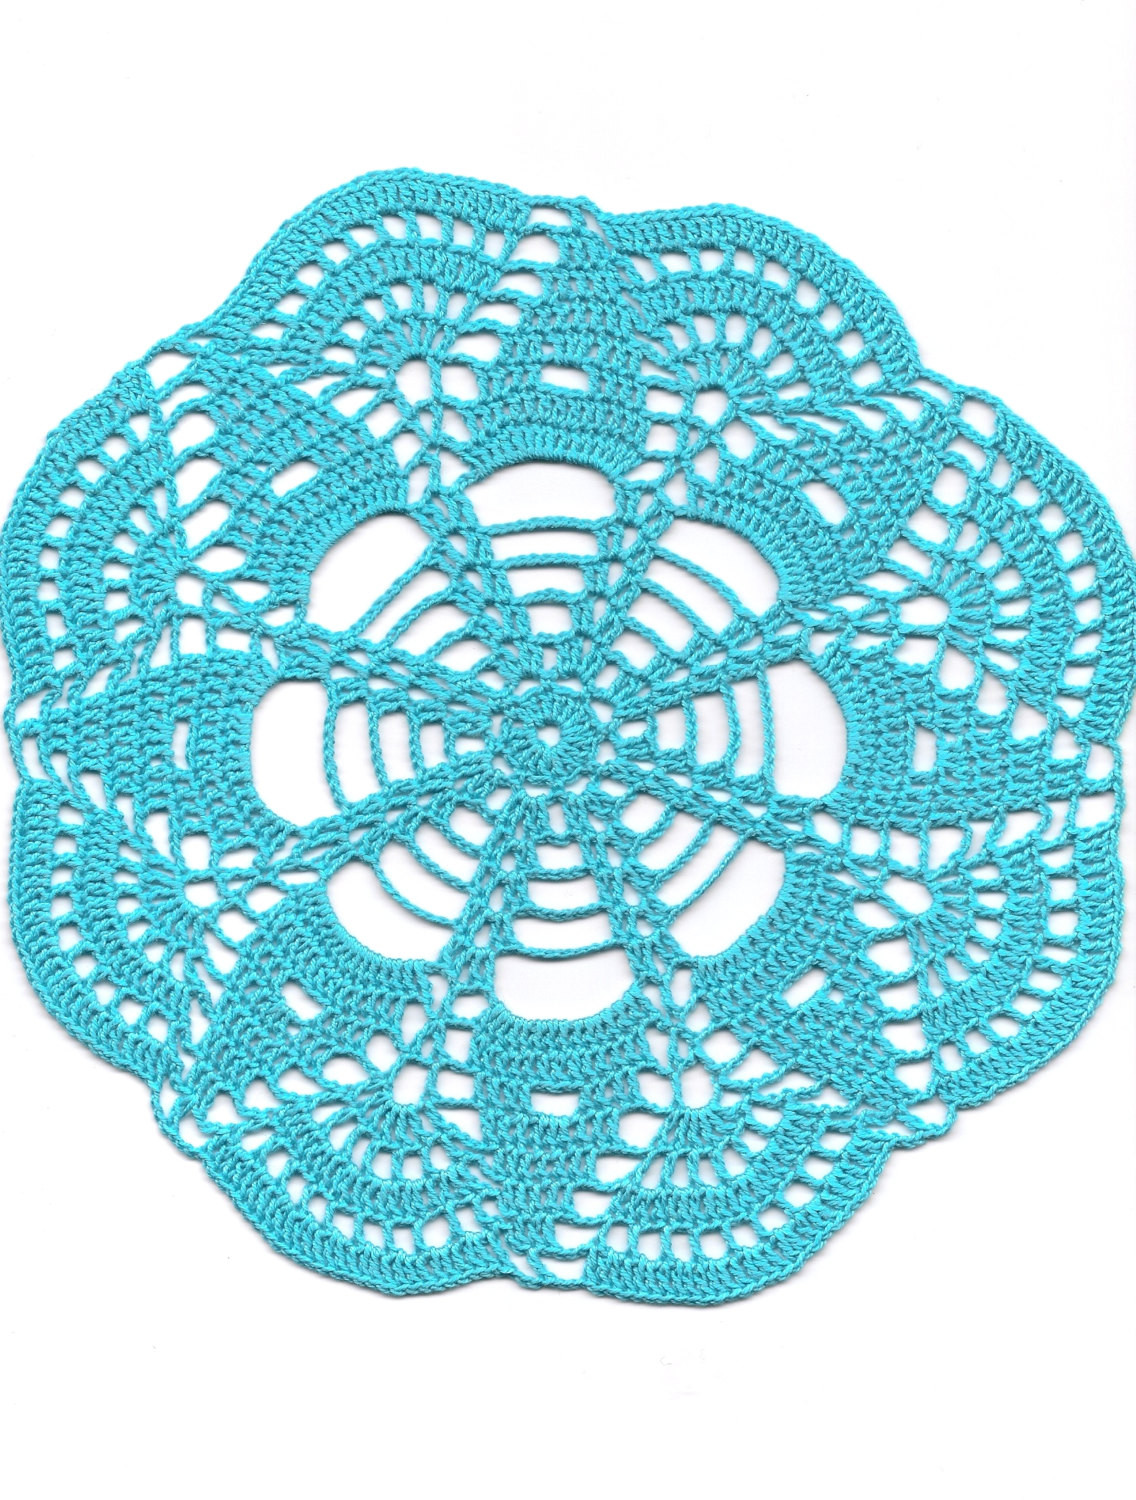 Awesome Christmas T Crochet Doily Lace Doilies Decoration by Christmas Doilies Of Wonderful 44 Photos Christmas Doilies